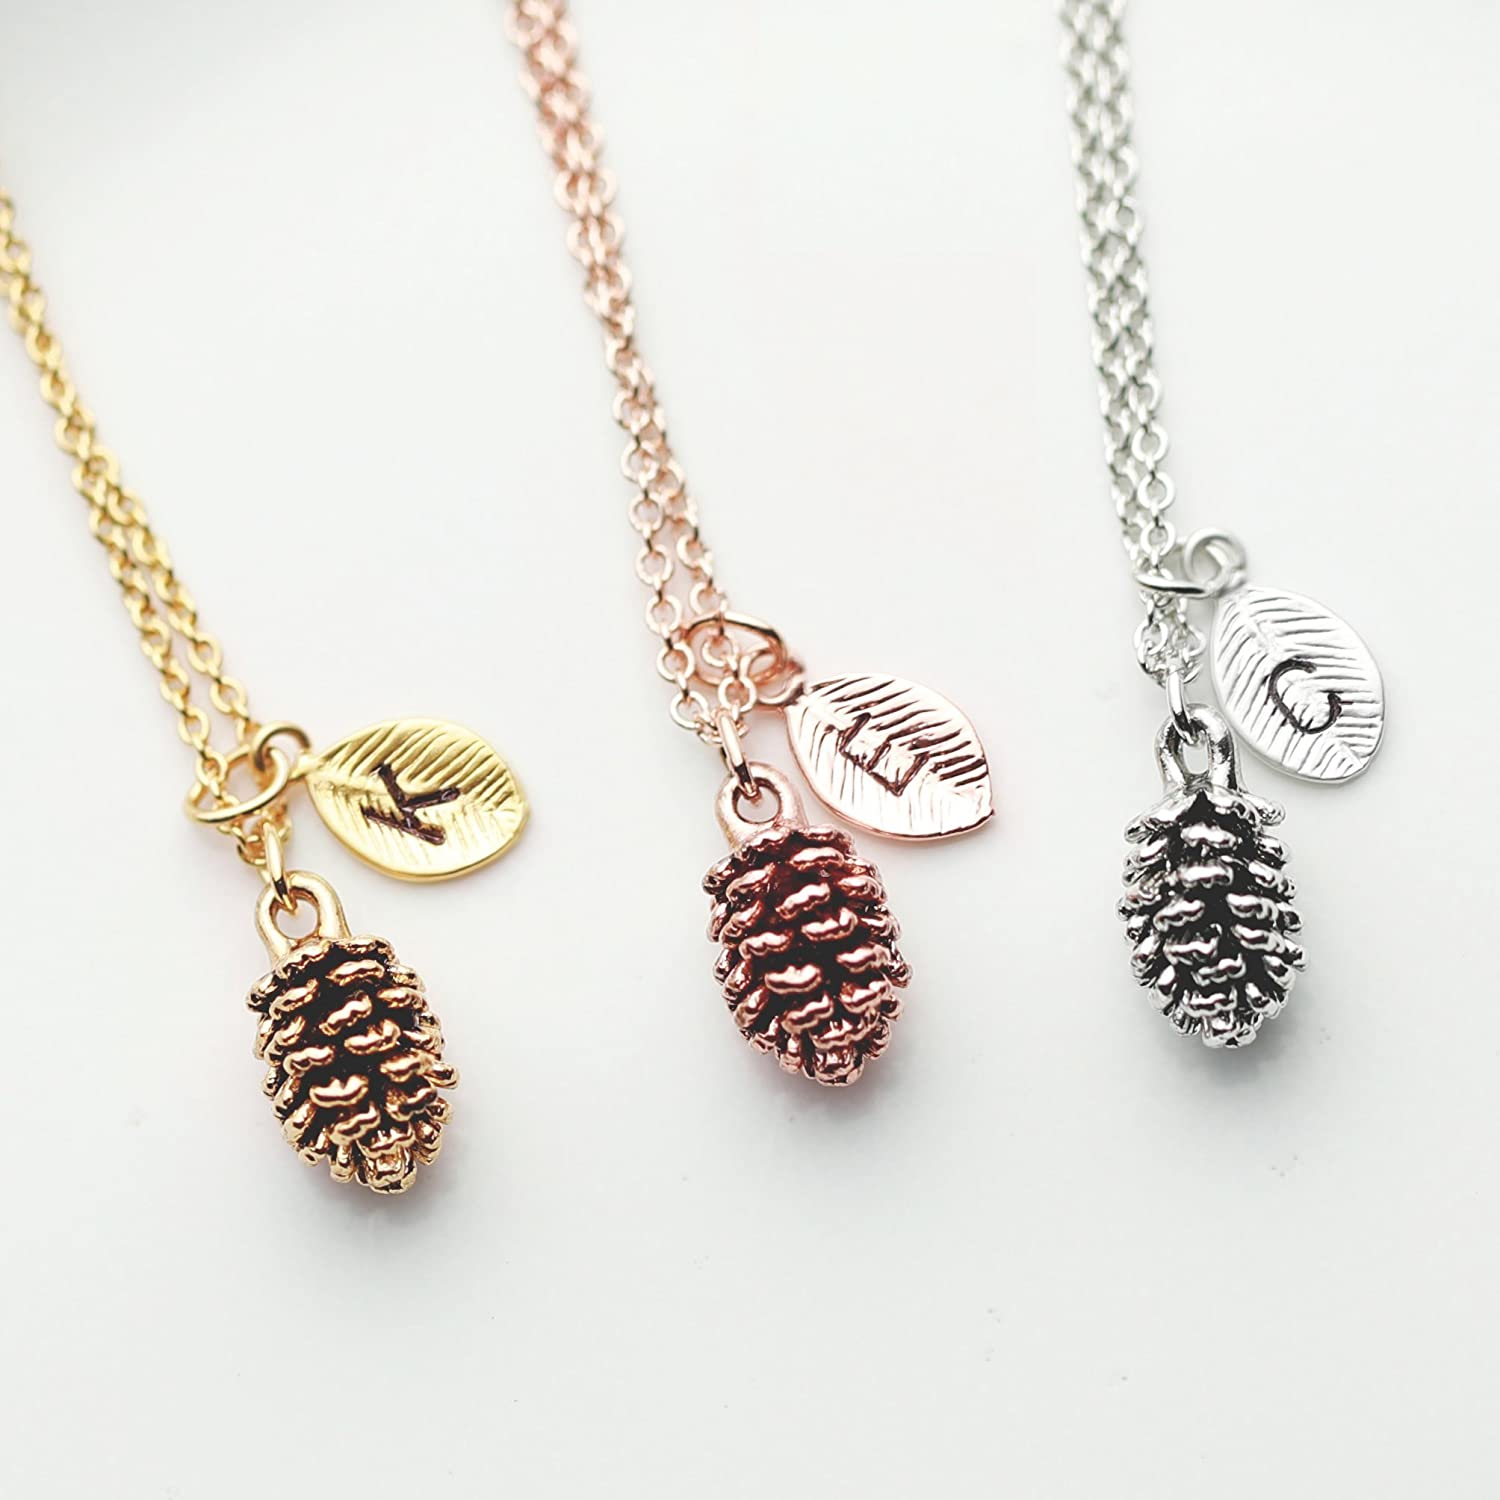 SAME DAY SHIPPING before 3 PM EST Pinecone Necklace - nature necklace nature jewelry best friend gift for her Gold leaf Necklace Pine Cone Necklace Rosegold Necklace Gold Silver - 3PCN-L